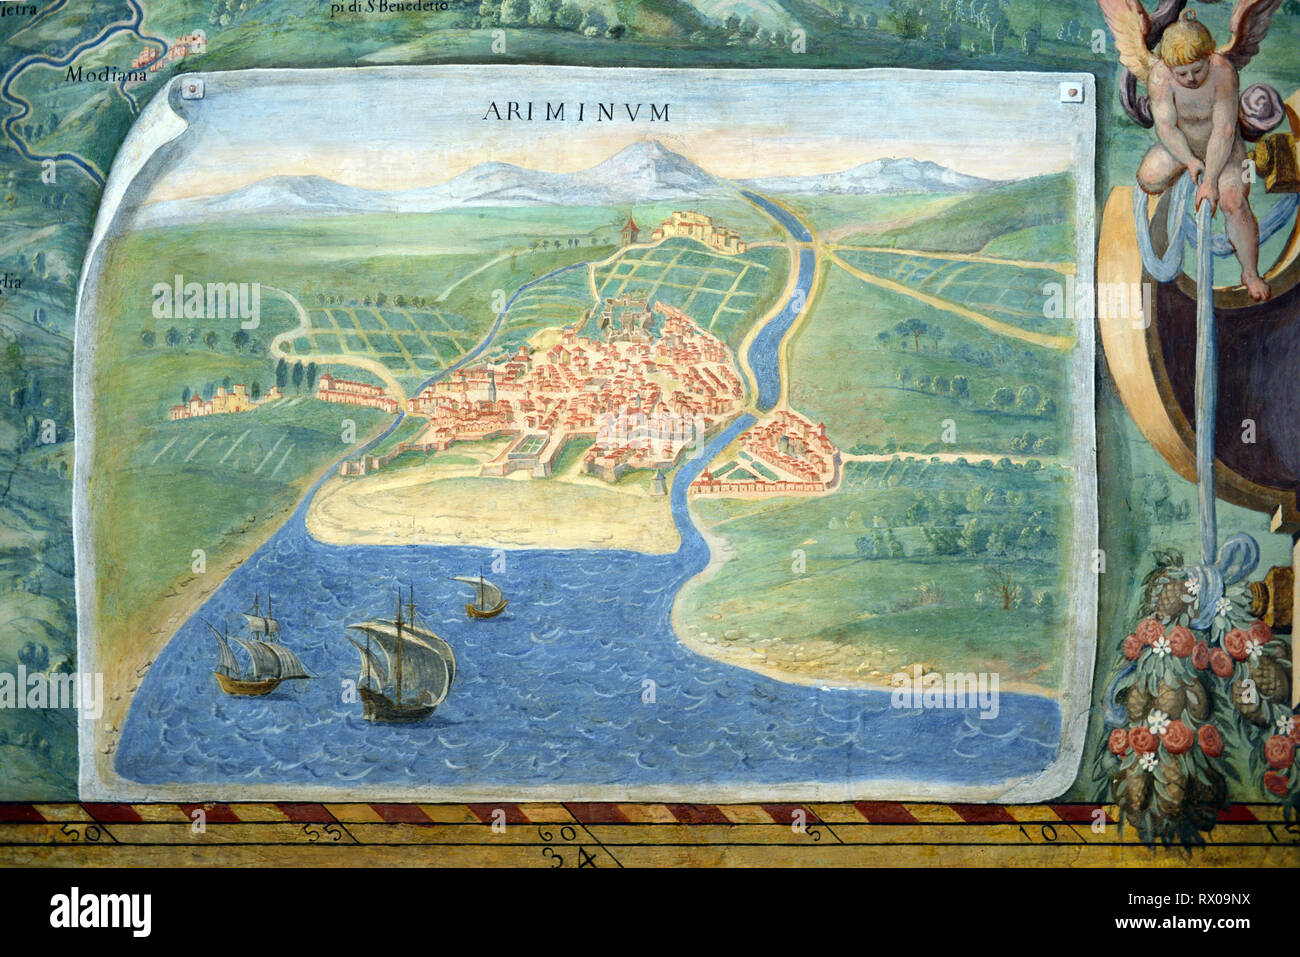 Town Plan or Old Map of Rimini, Italy. Fresco or Wall Painting in Gallery of Maps (1580-83) based on Drawings by Ignazio Danti Vatican Museums - Stock Image